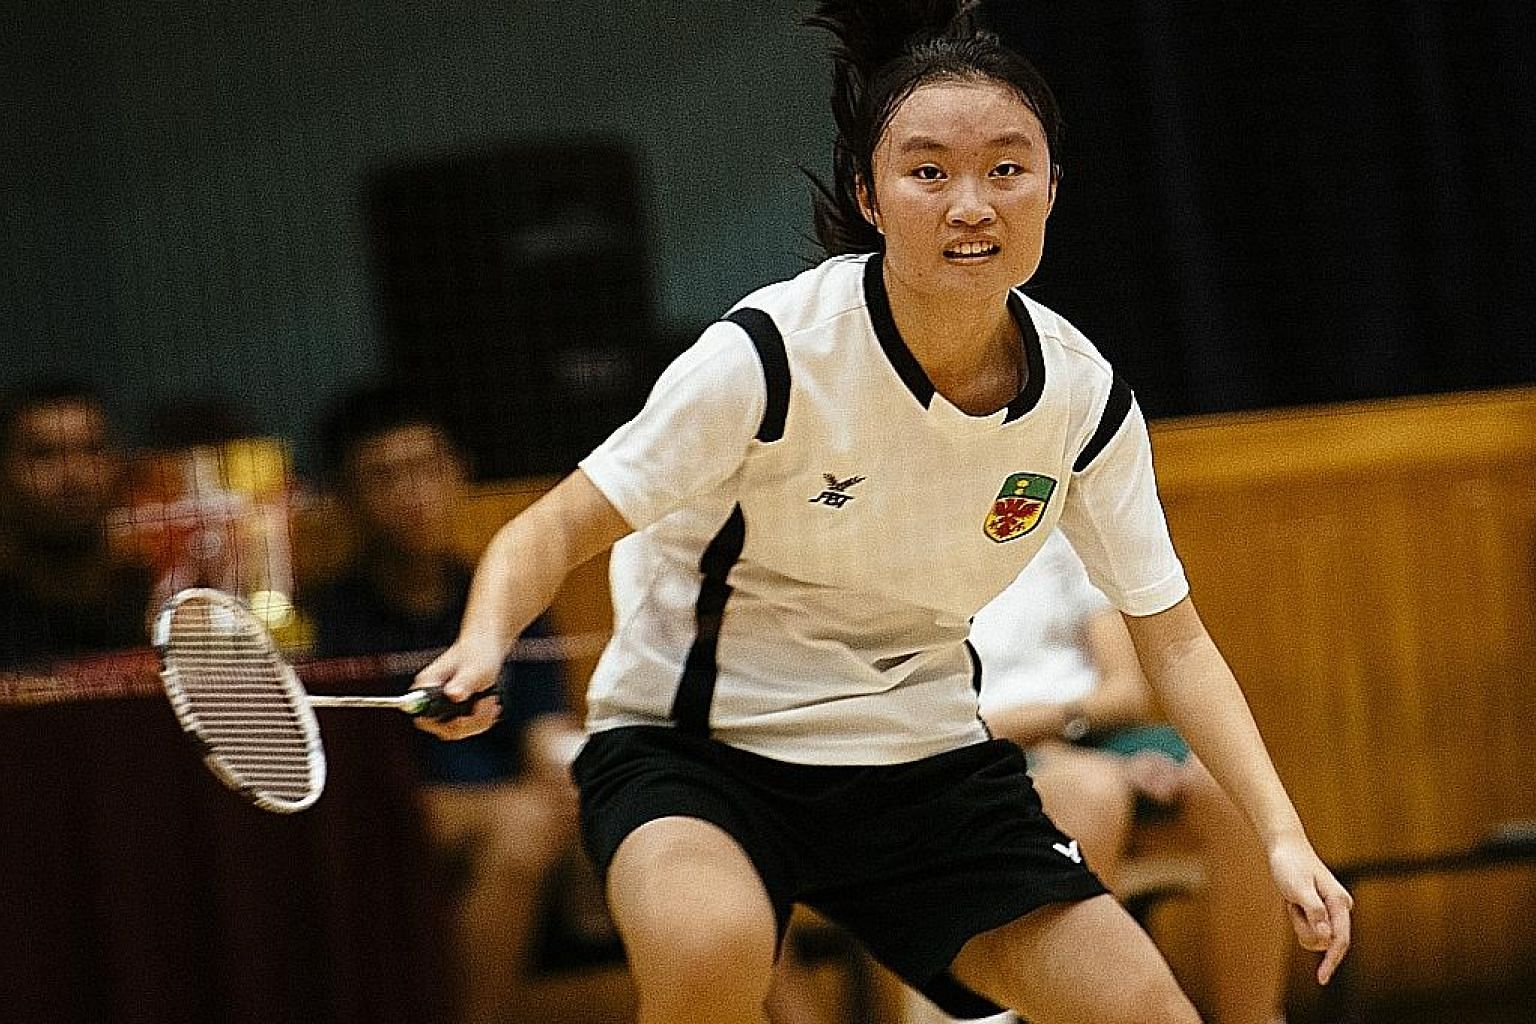 Arielle Koh (above) and Chew Wei Loon, seen celebrating with supporters, both contributed winning points to Raffles Institution's boys' and girls' teams. They completed the A Division badminton double for the third year running.